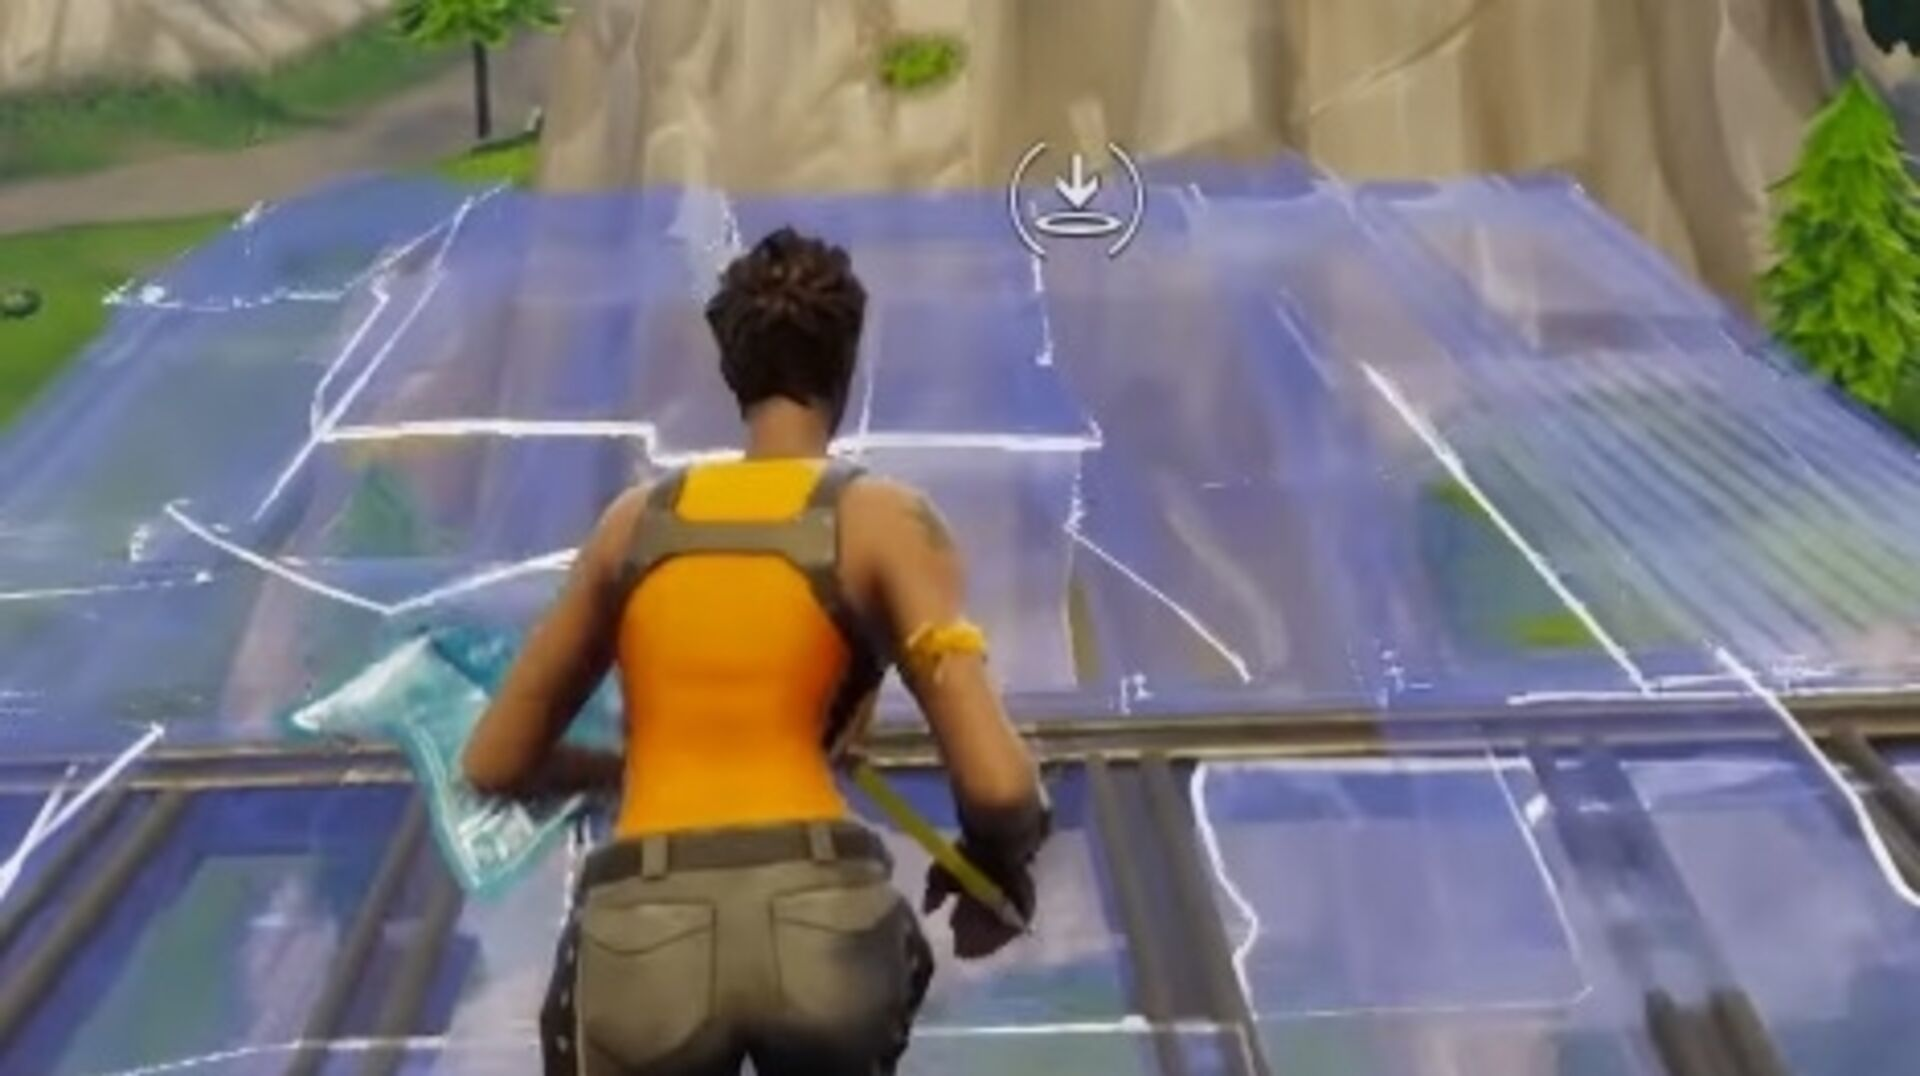 Epic wants the Fortnite endgame to be more than